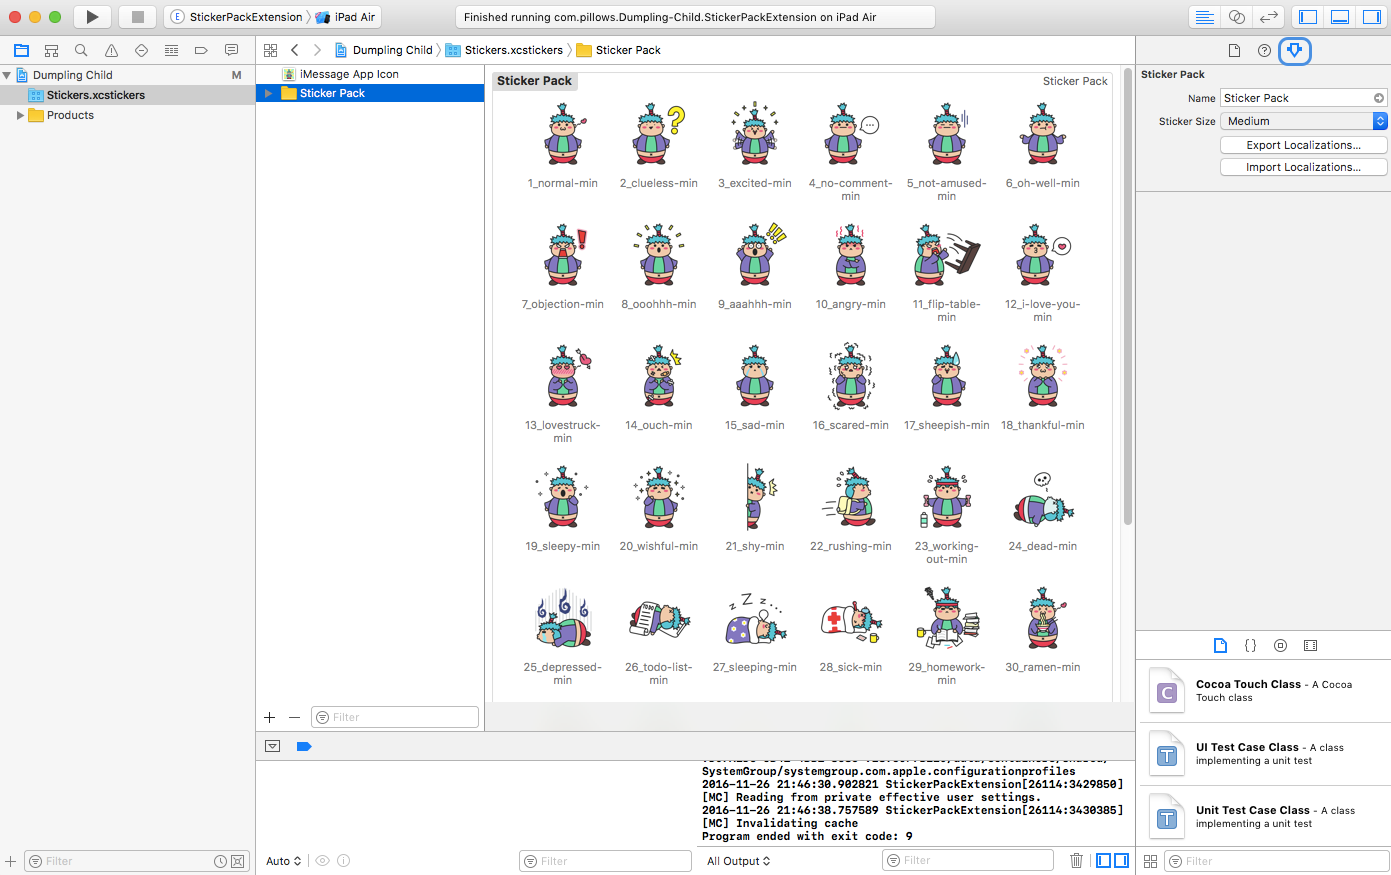 Xcode with example sticker pack images uploaded